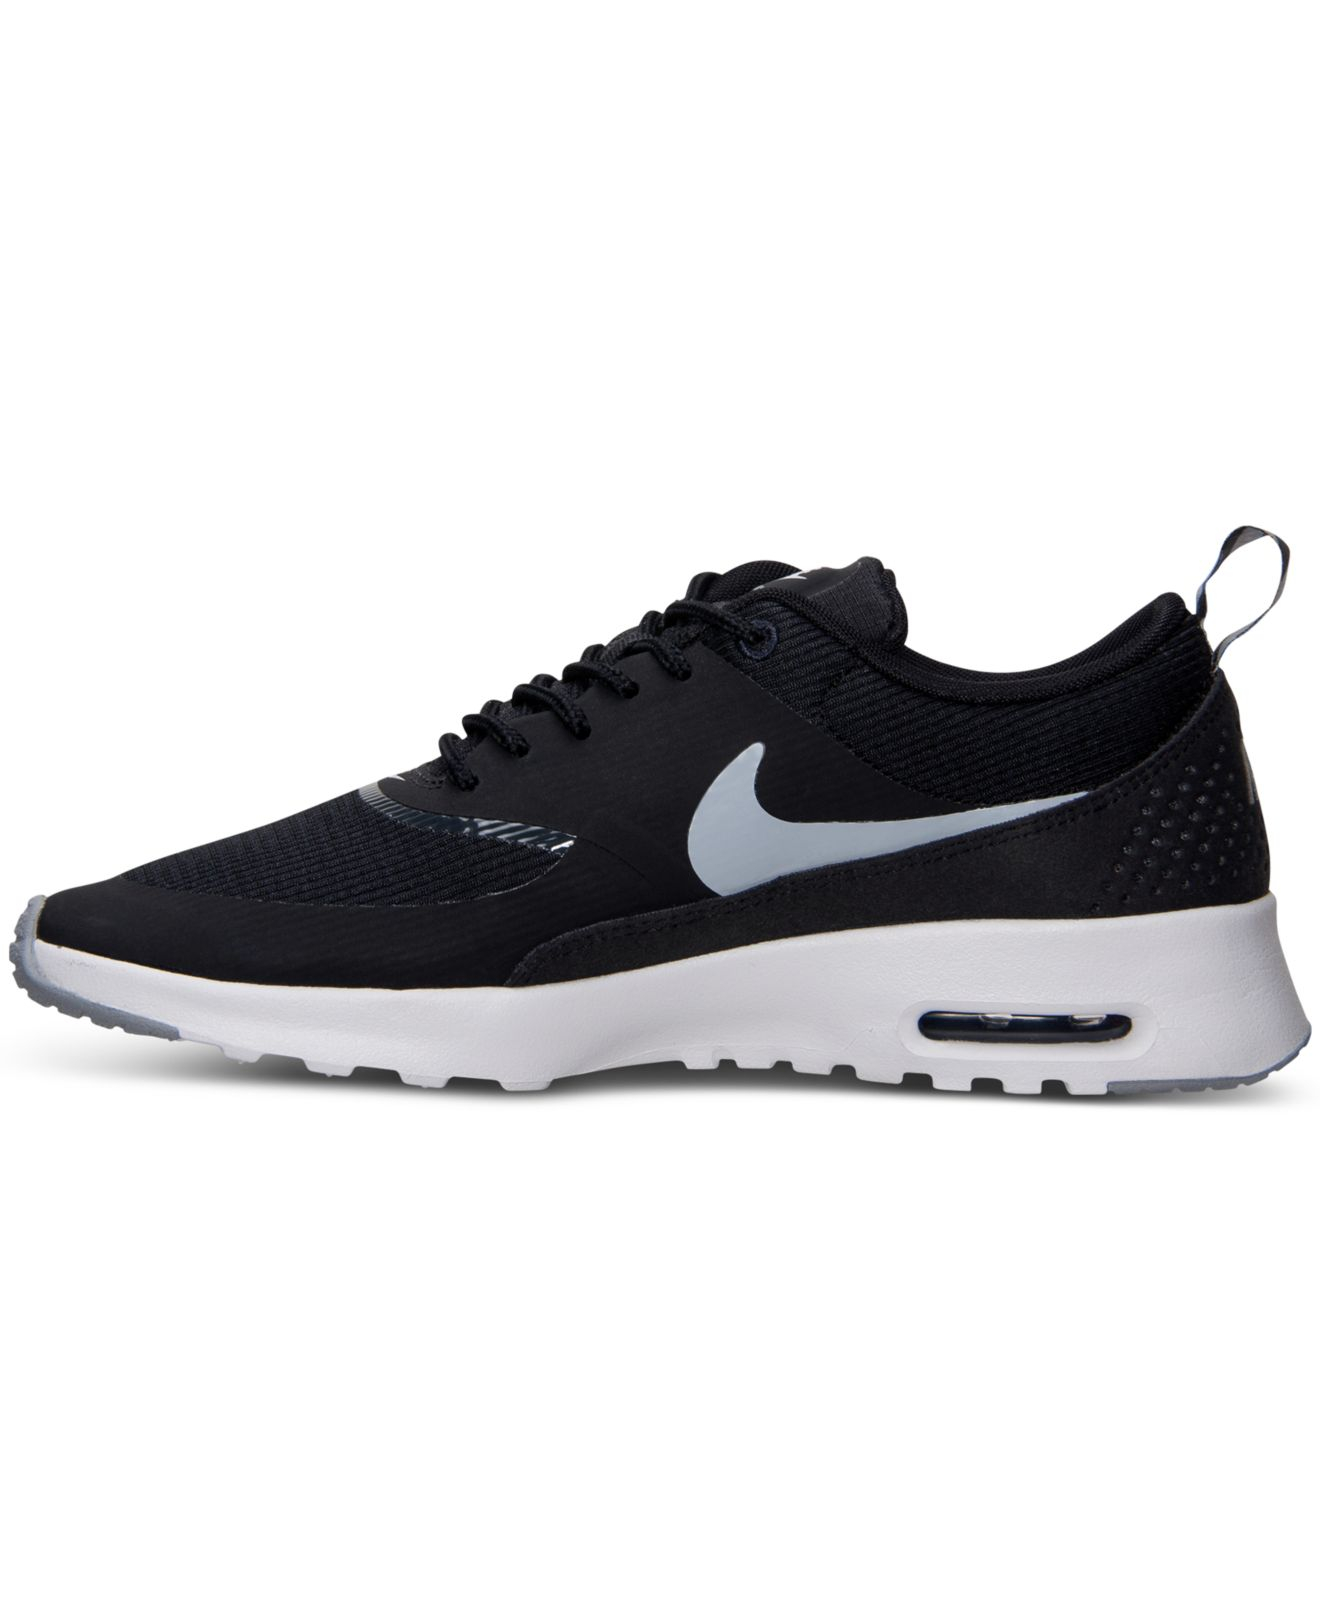 buy online d8dd9 5d946 ... czech gallery. previously sold at macys womens nike air max f7ac1 d3b8f  ...